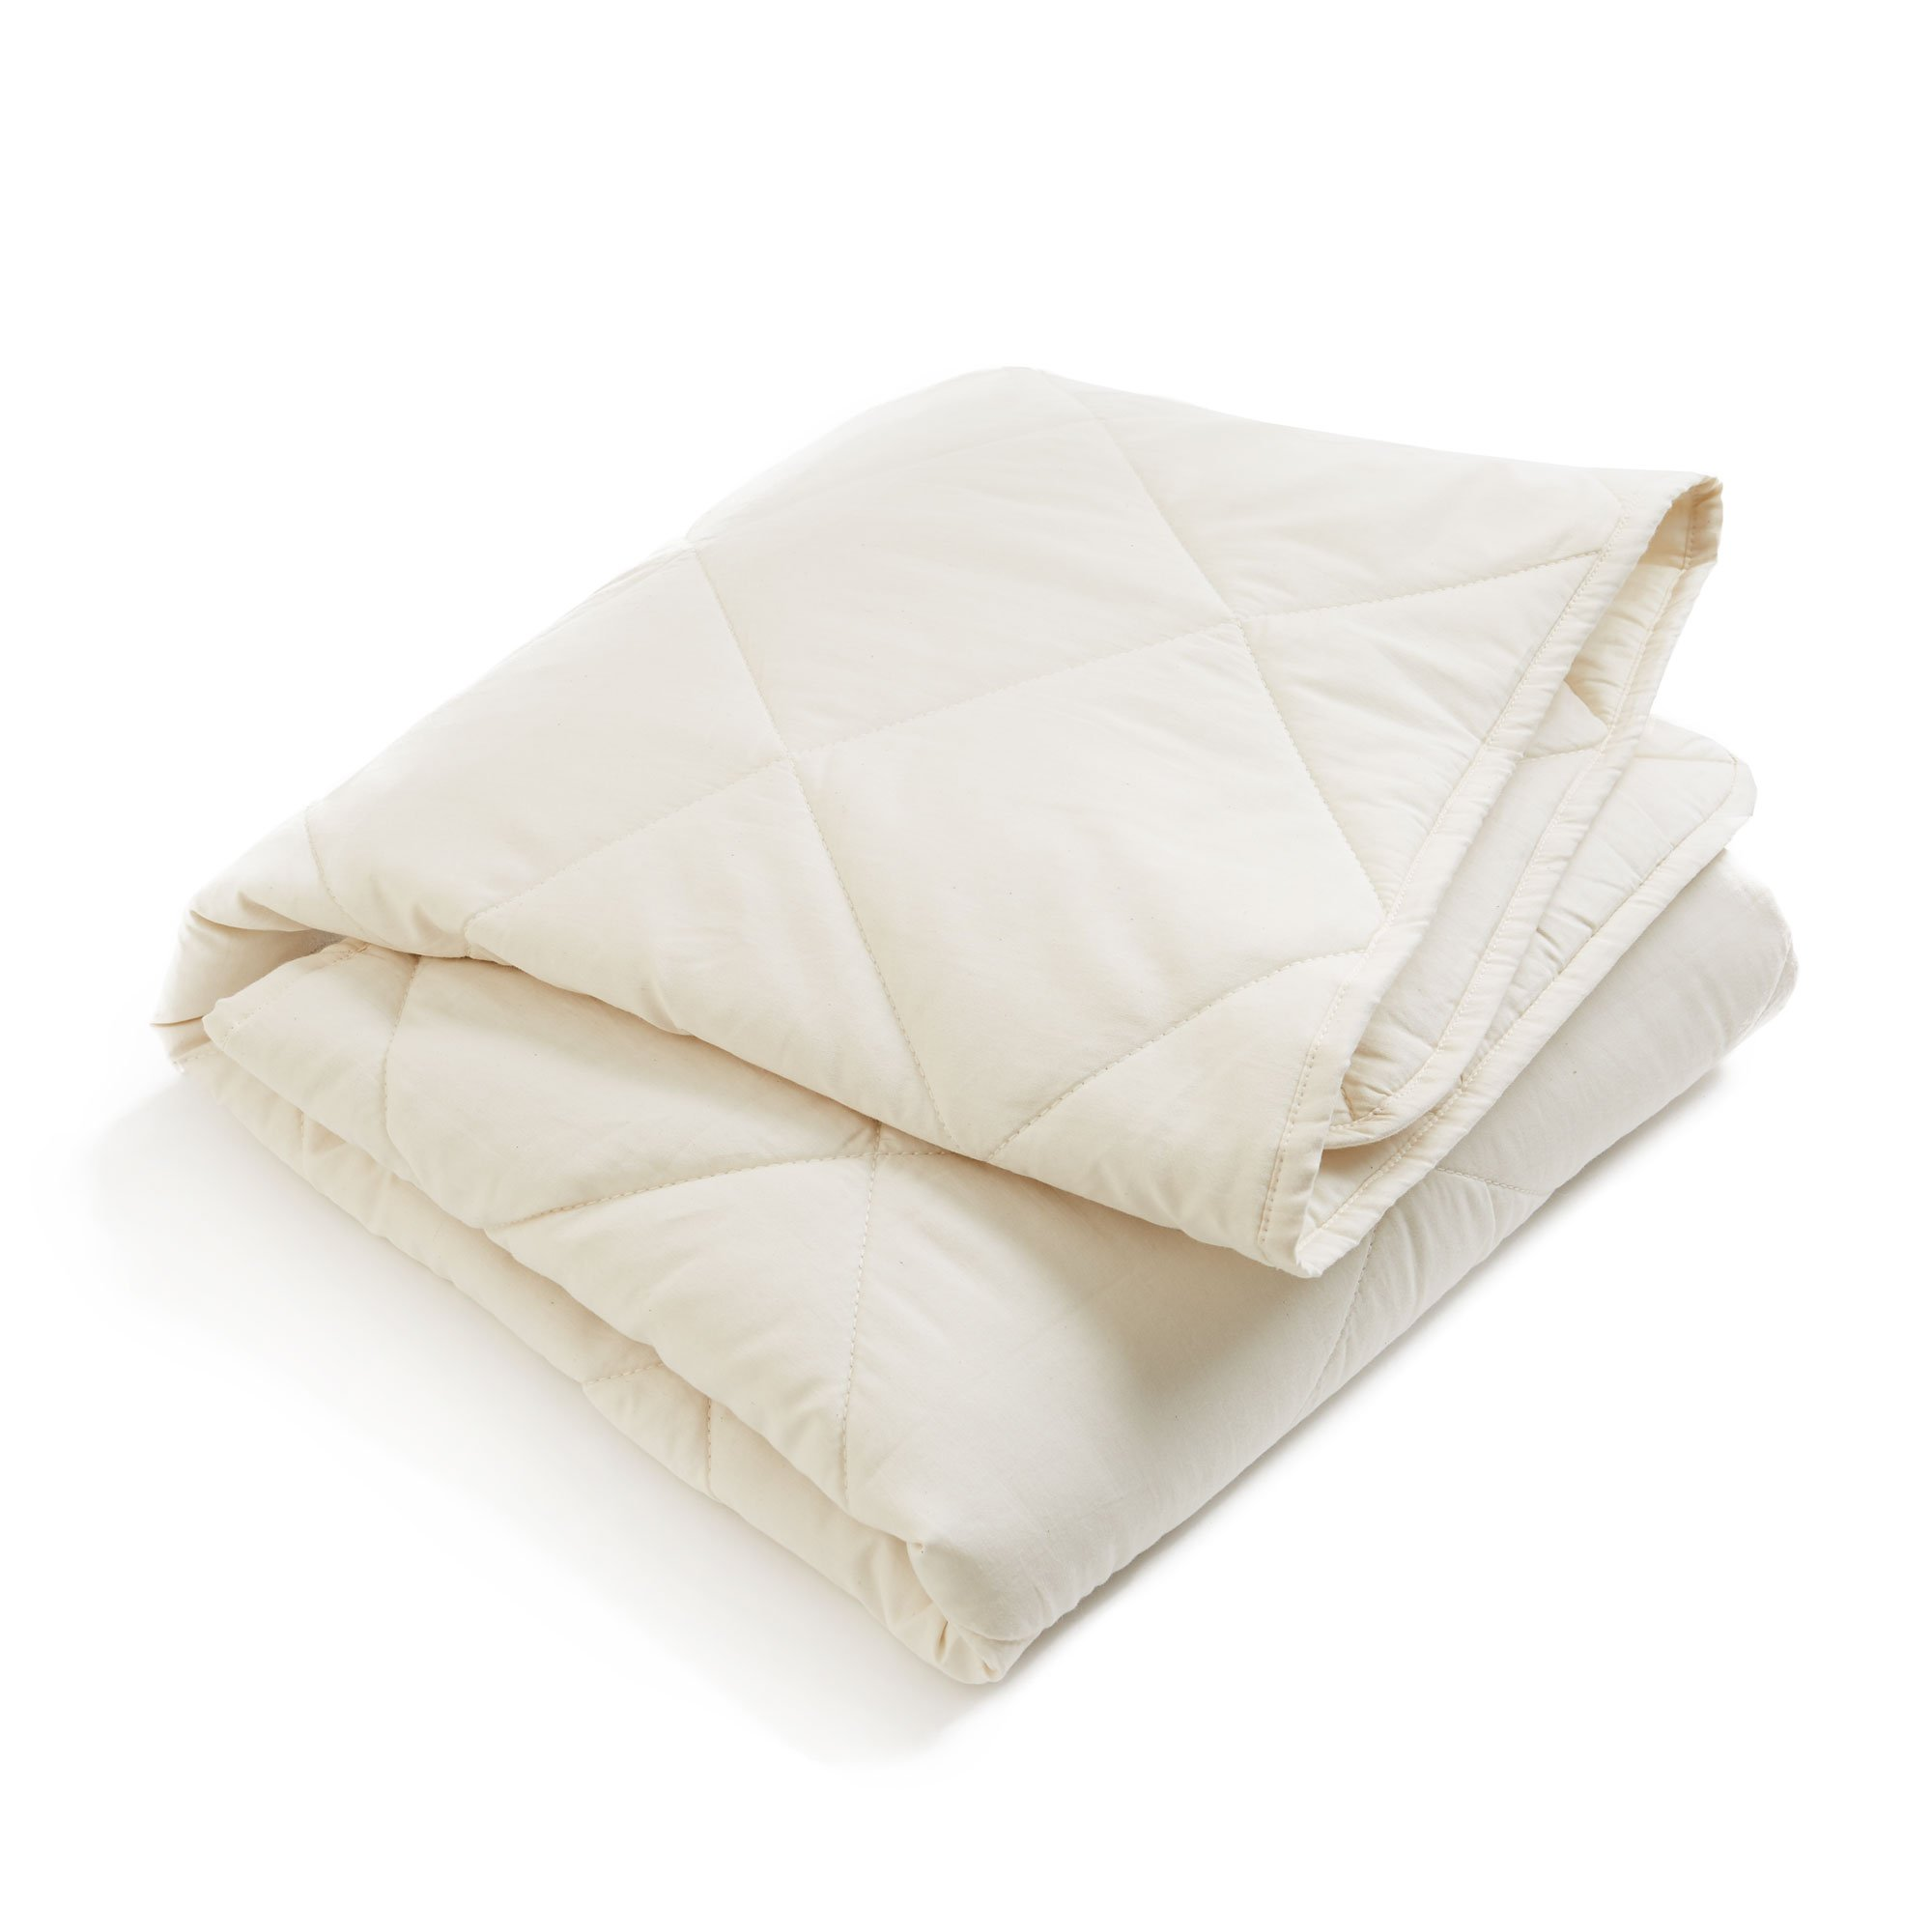 Brooklyn Born Organic Quilt - All Natural, Ivory, One Size by Brooklyn Born (Image #1)